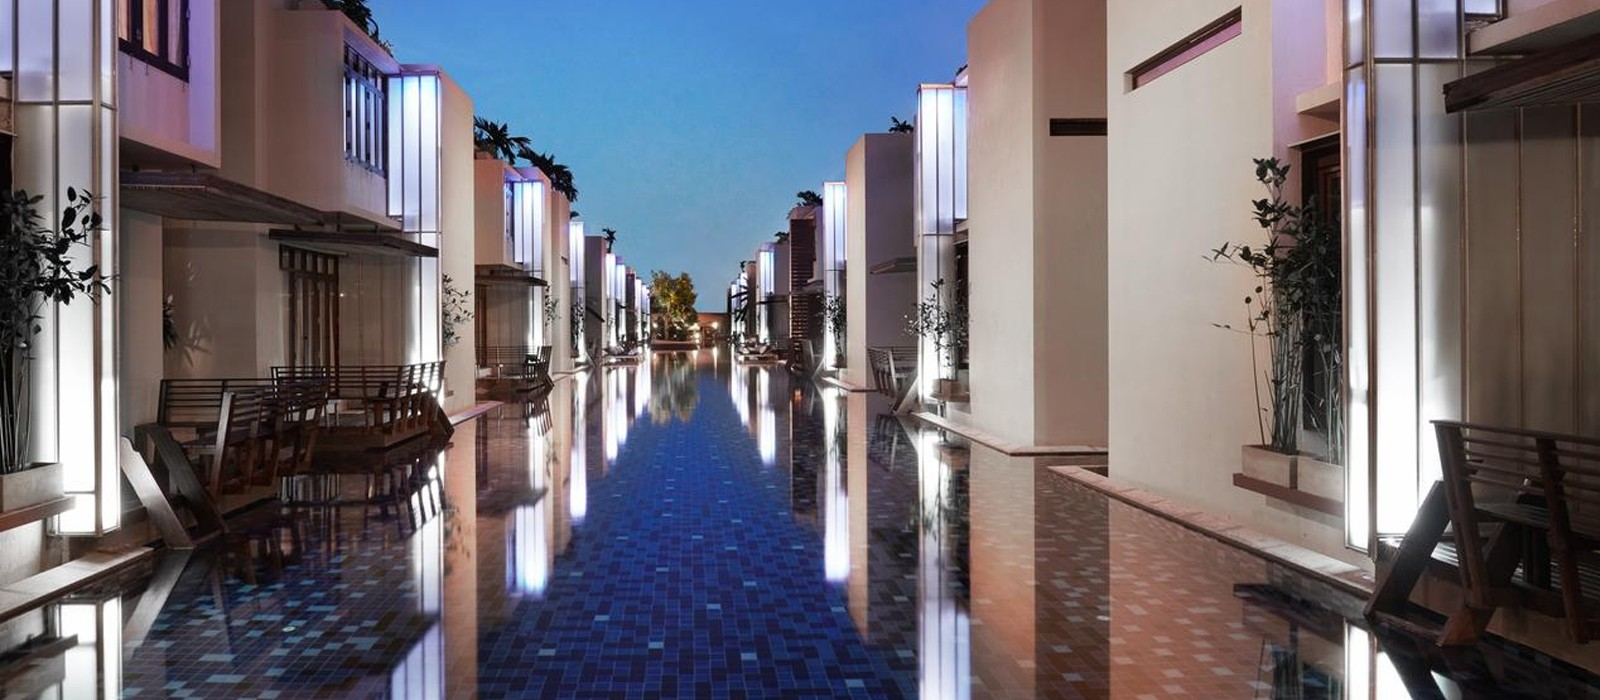 Luxury Hua Hin Holiday Packages Lets Sea Alfreco Resort Header